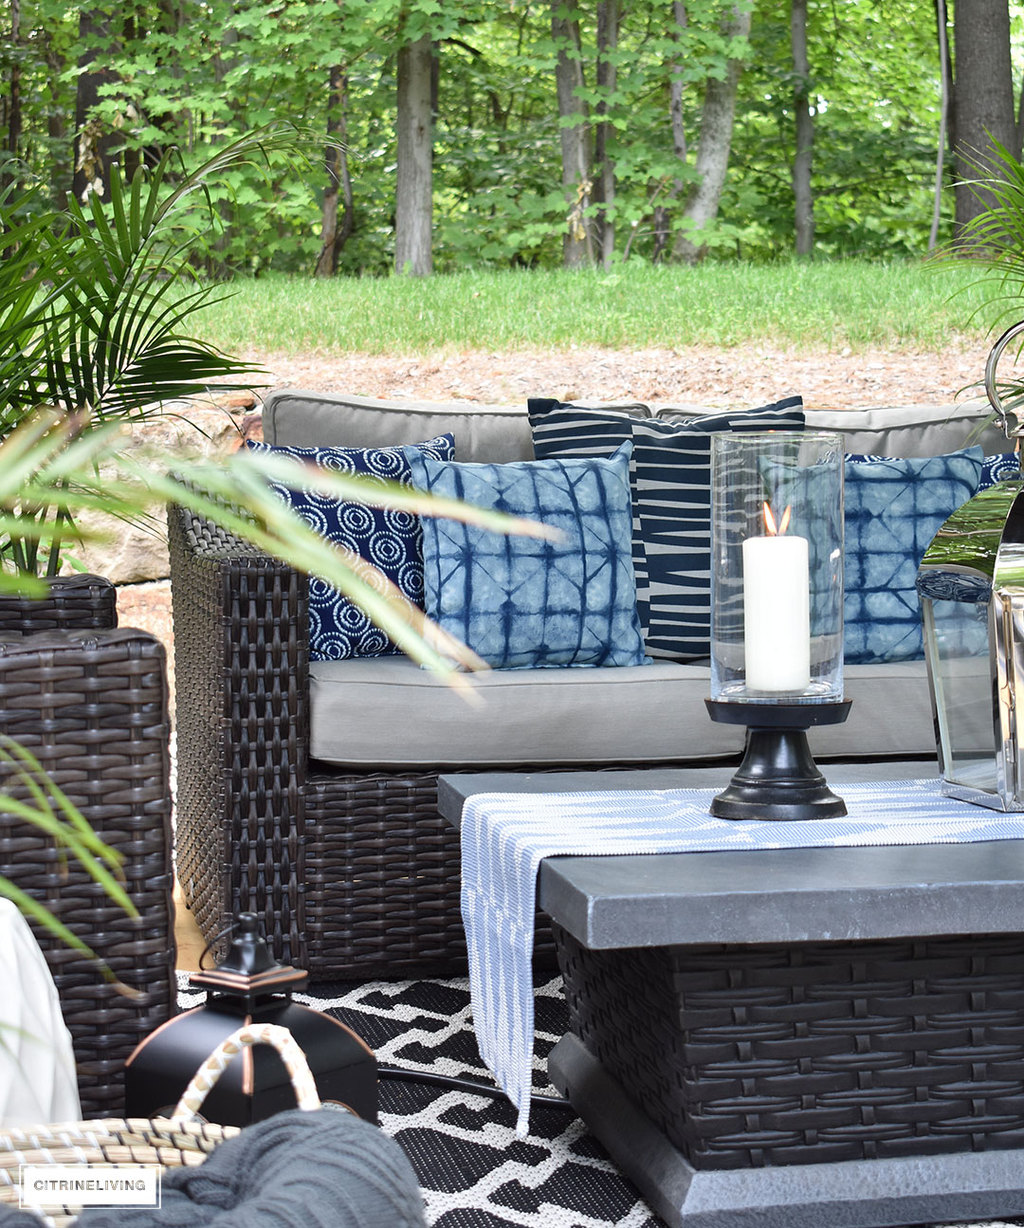 ... Create The Perfect Lounging Area In Your Backyard With A Beautiful  Covered Gazebo, With Added